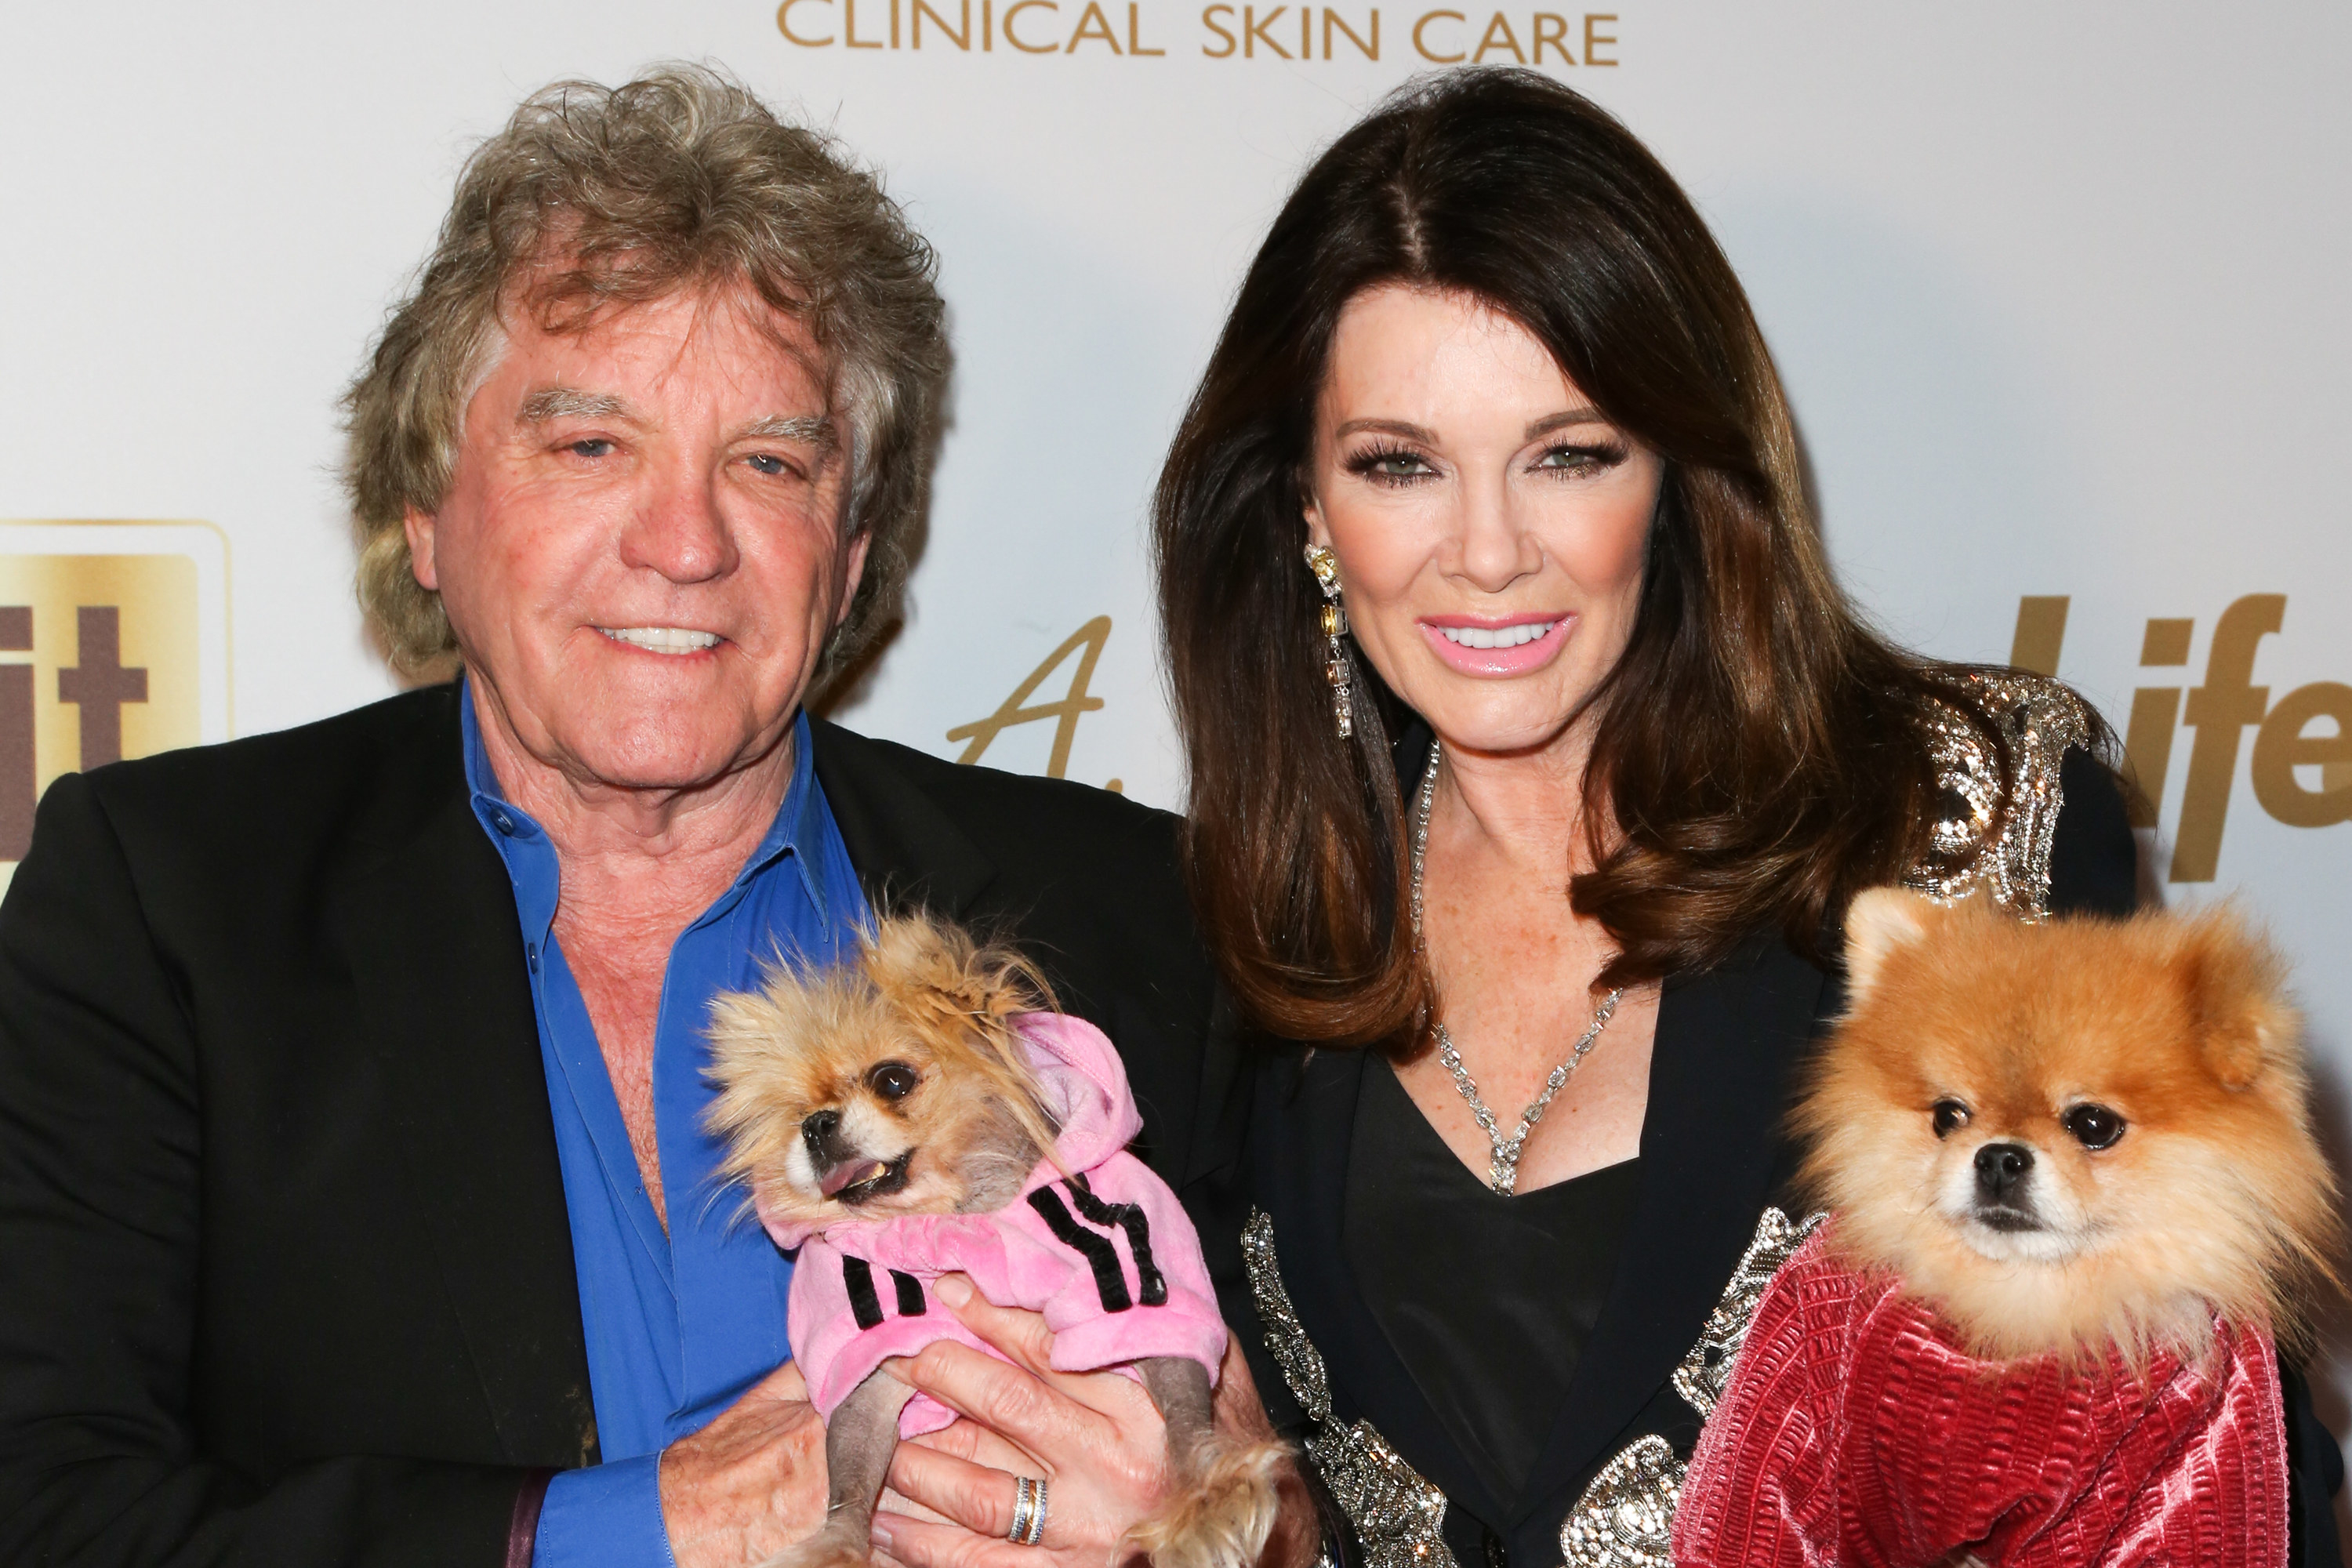 Ken and Lisa posing on a red carpet with two of their dogs